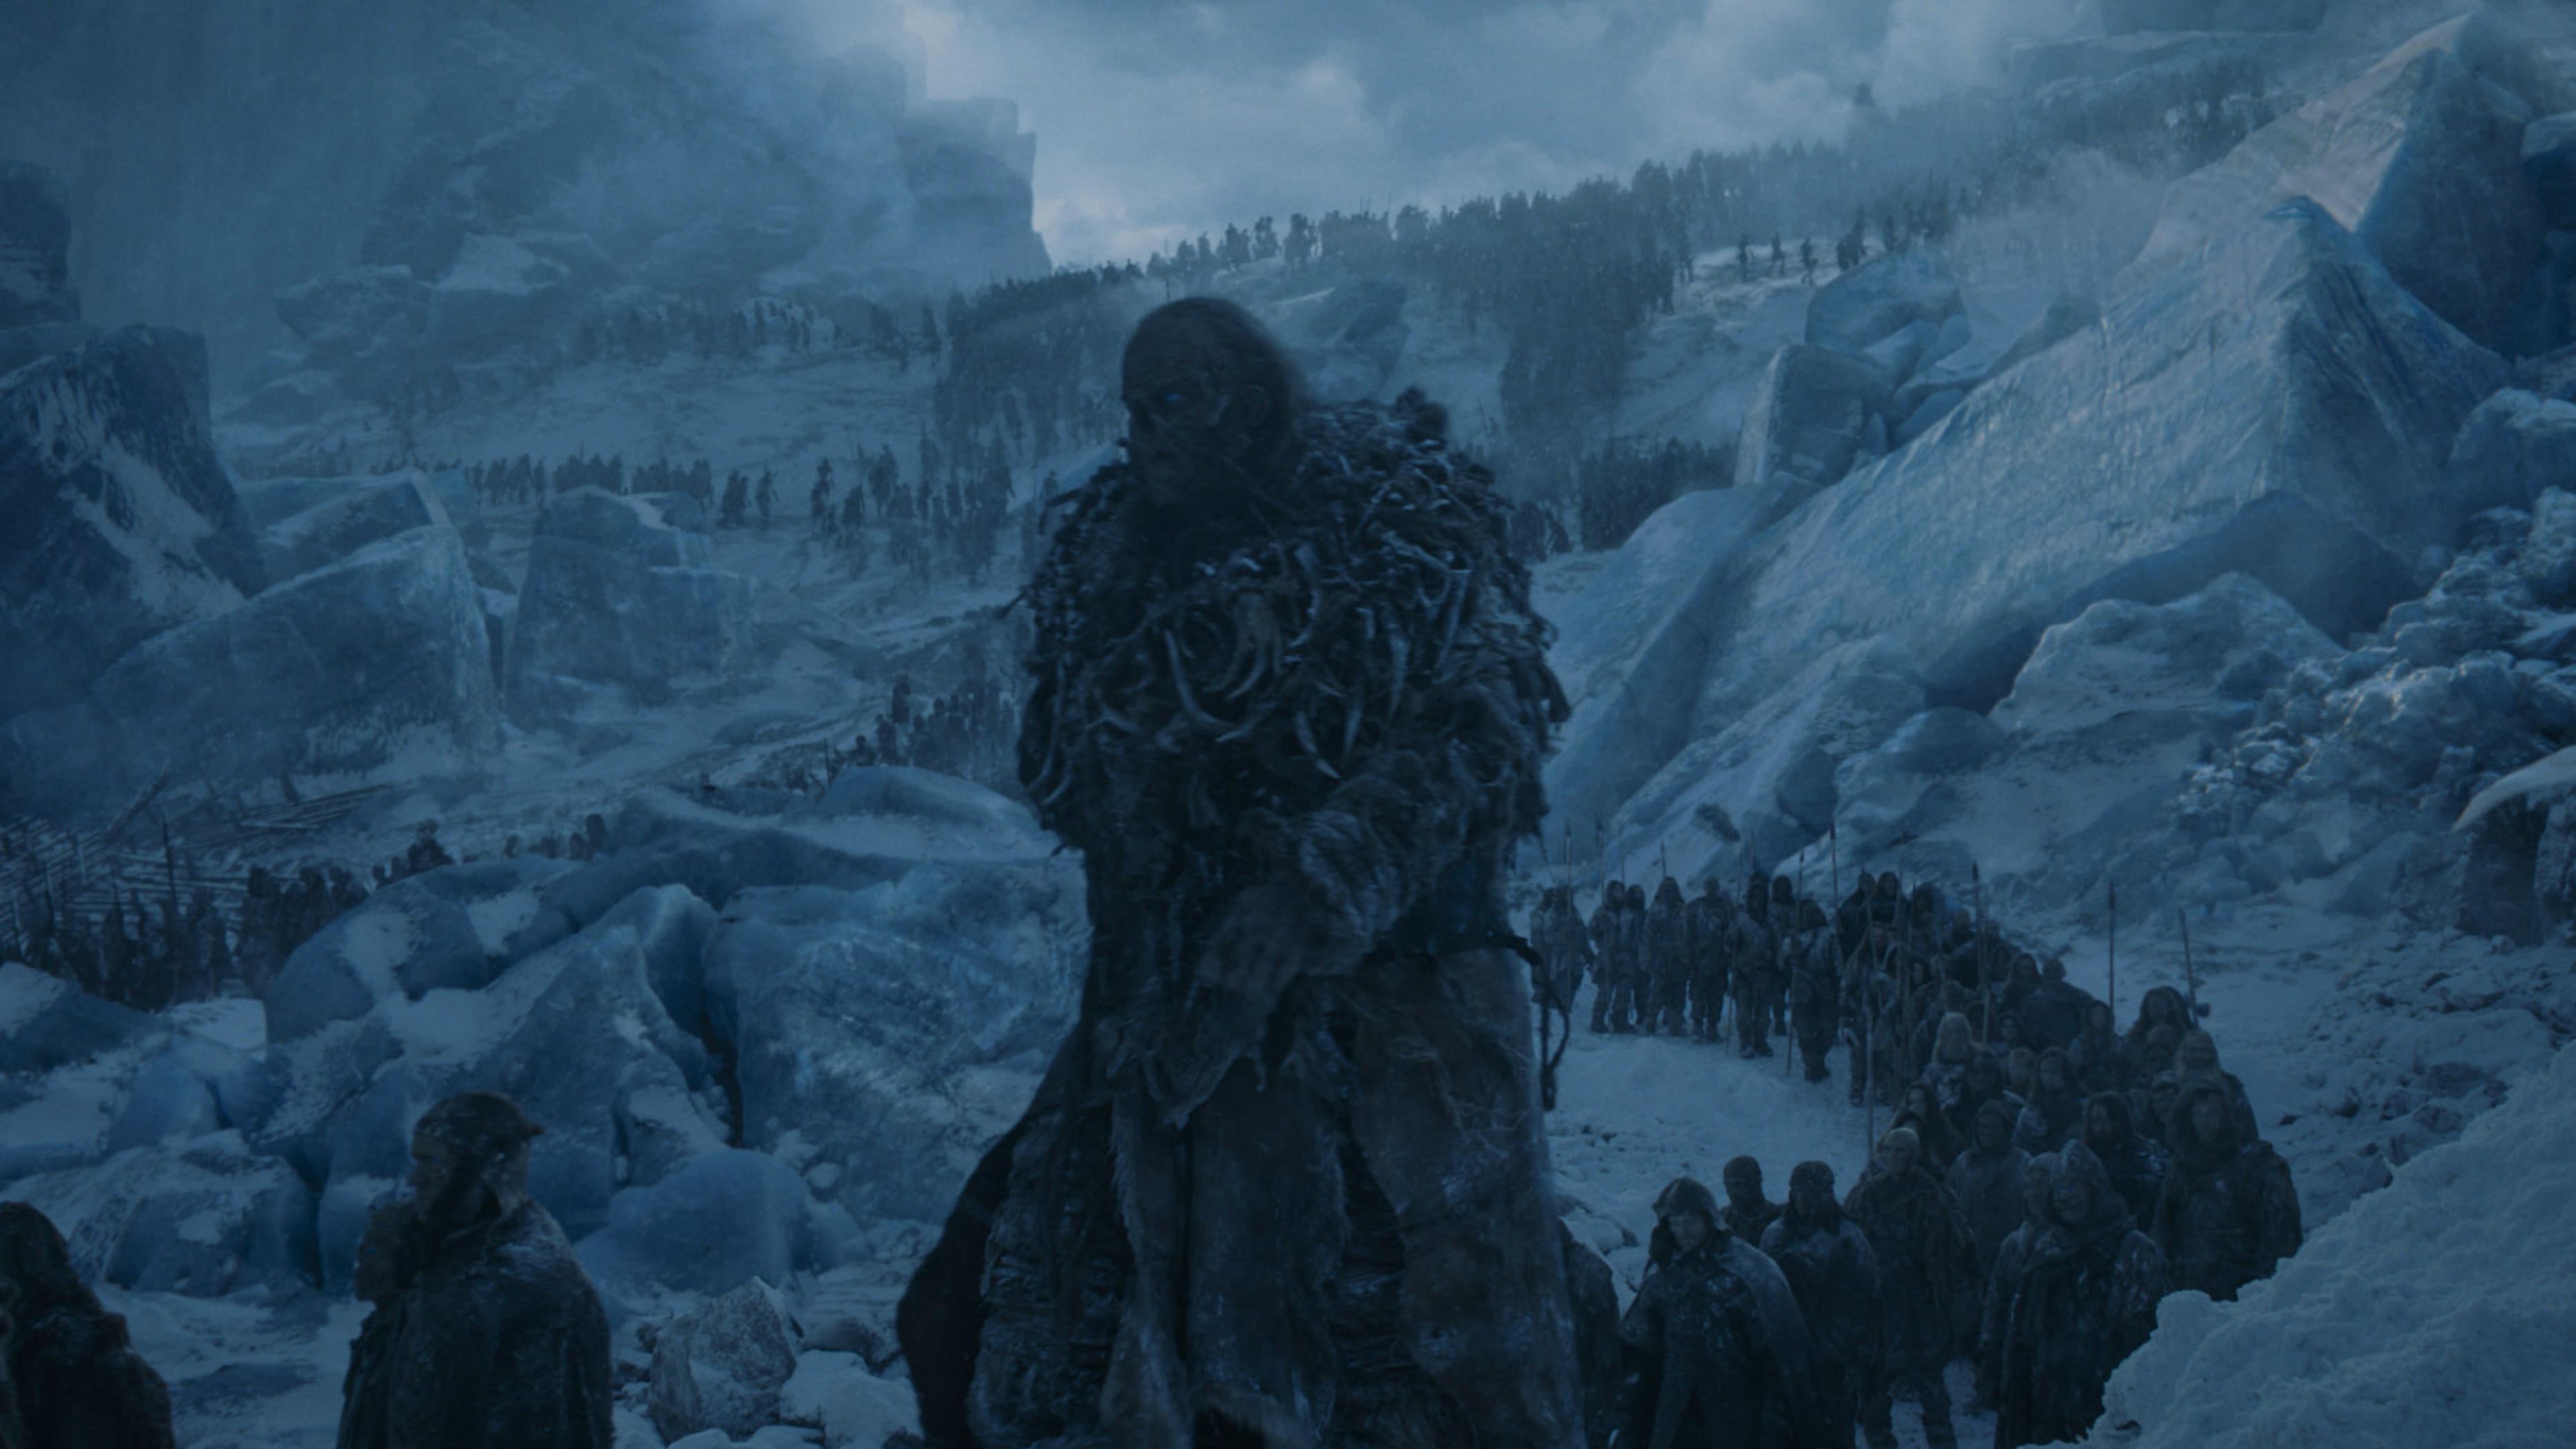 Probably debunked: Another tribe of wights?